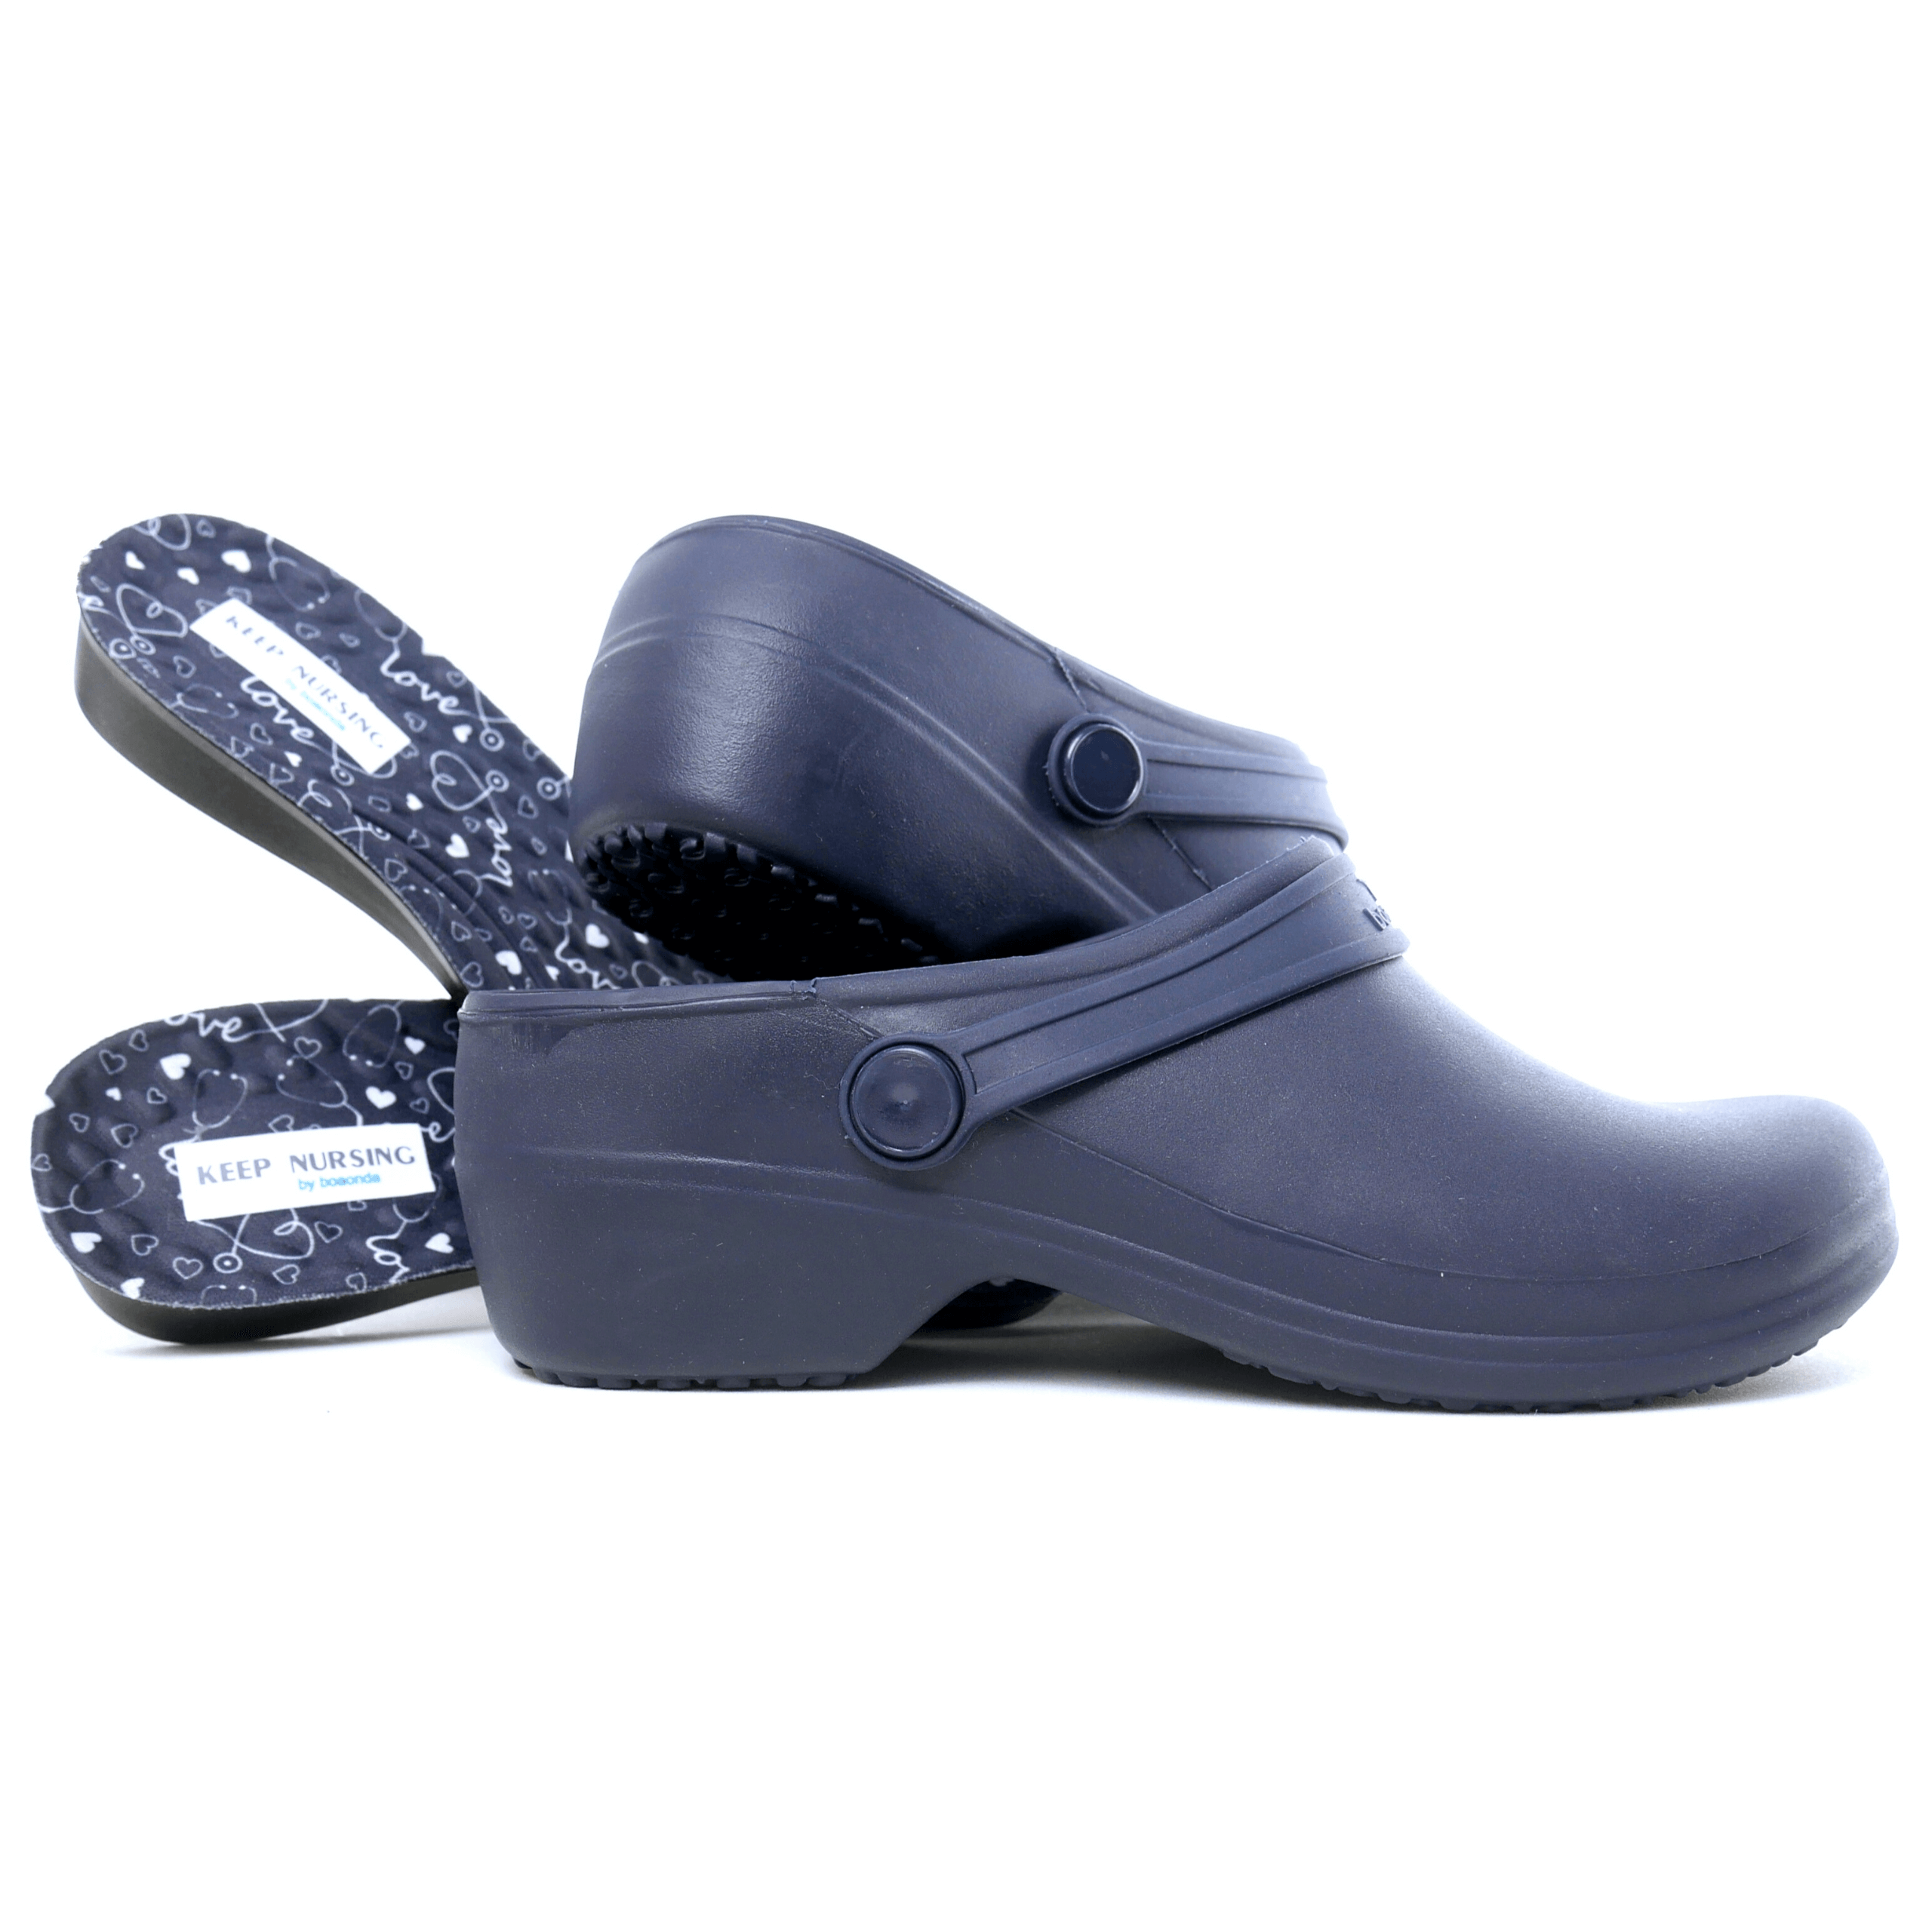 Bio Nurse Clogs - Navy with printed insole - Stetho Love